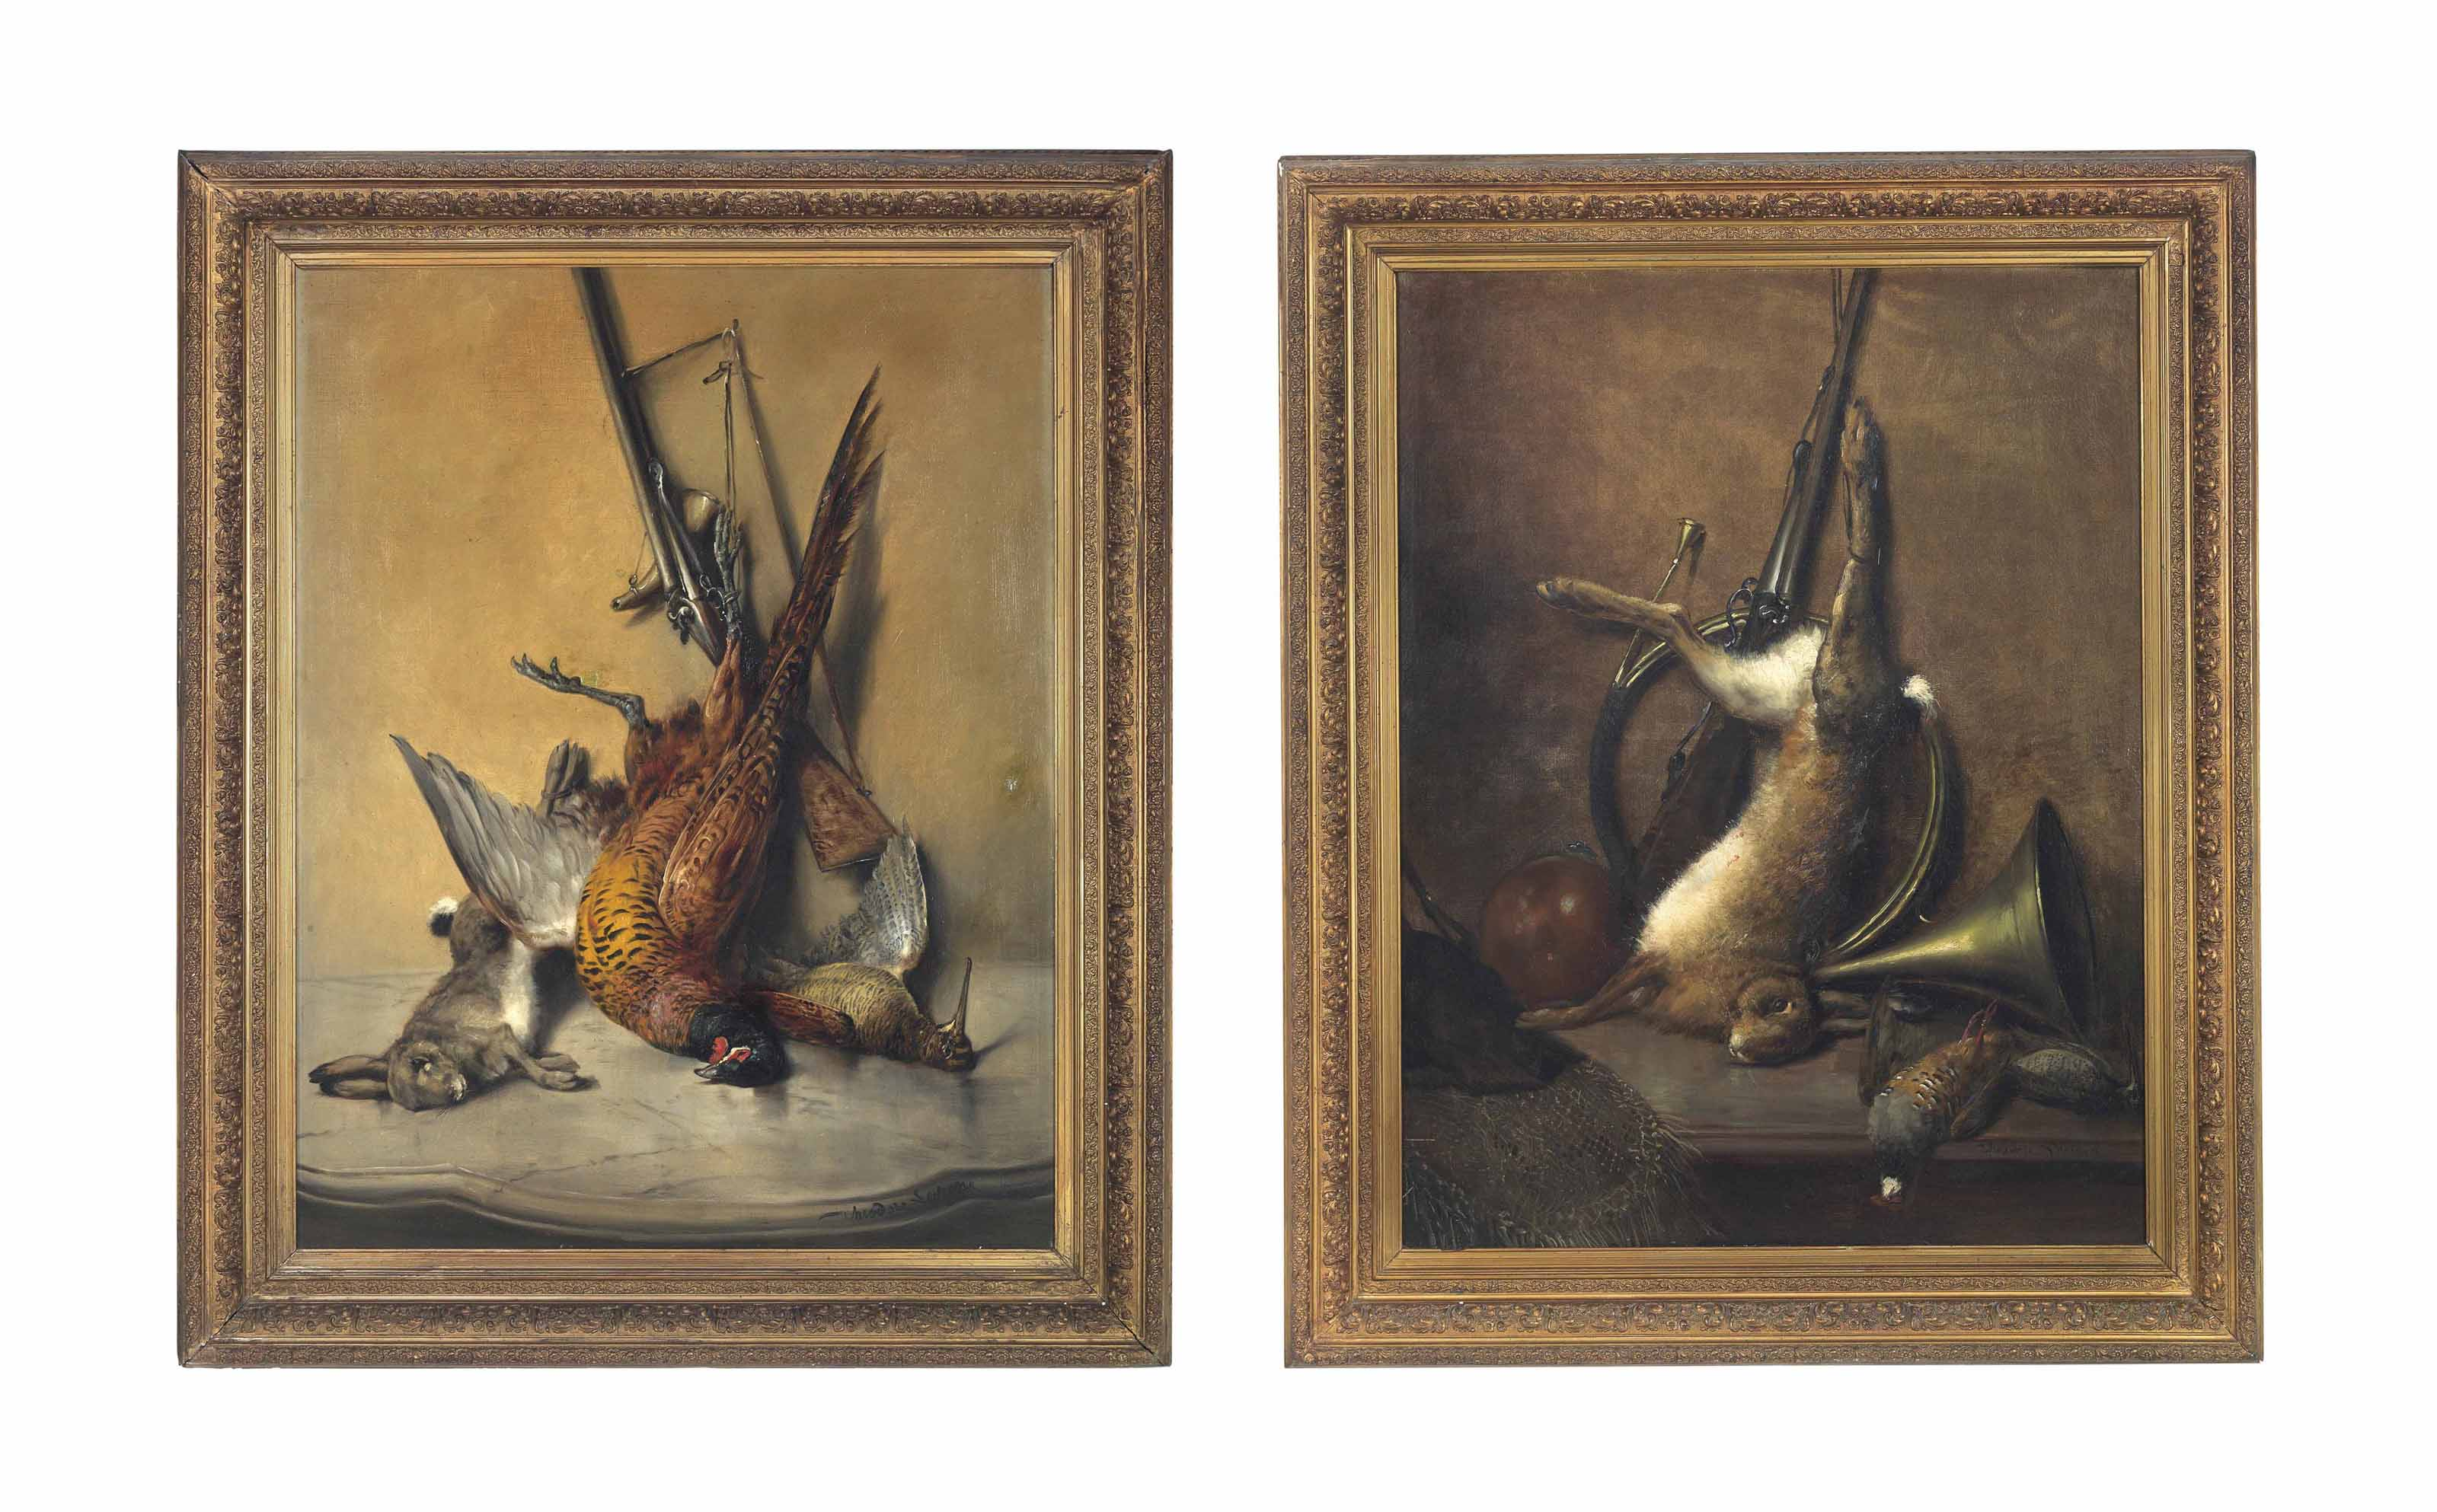 A pheasant, a hare and a snipe on a marble topped table; and A hare and a hunting horn on a ledge